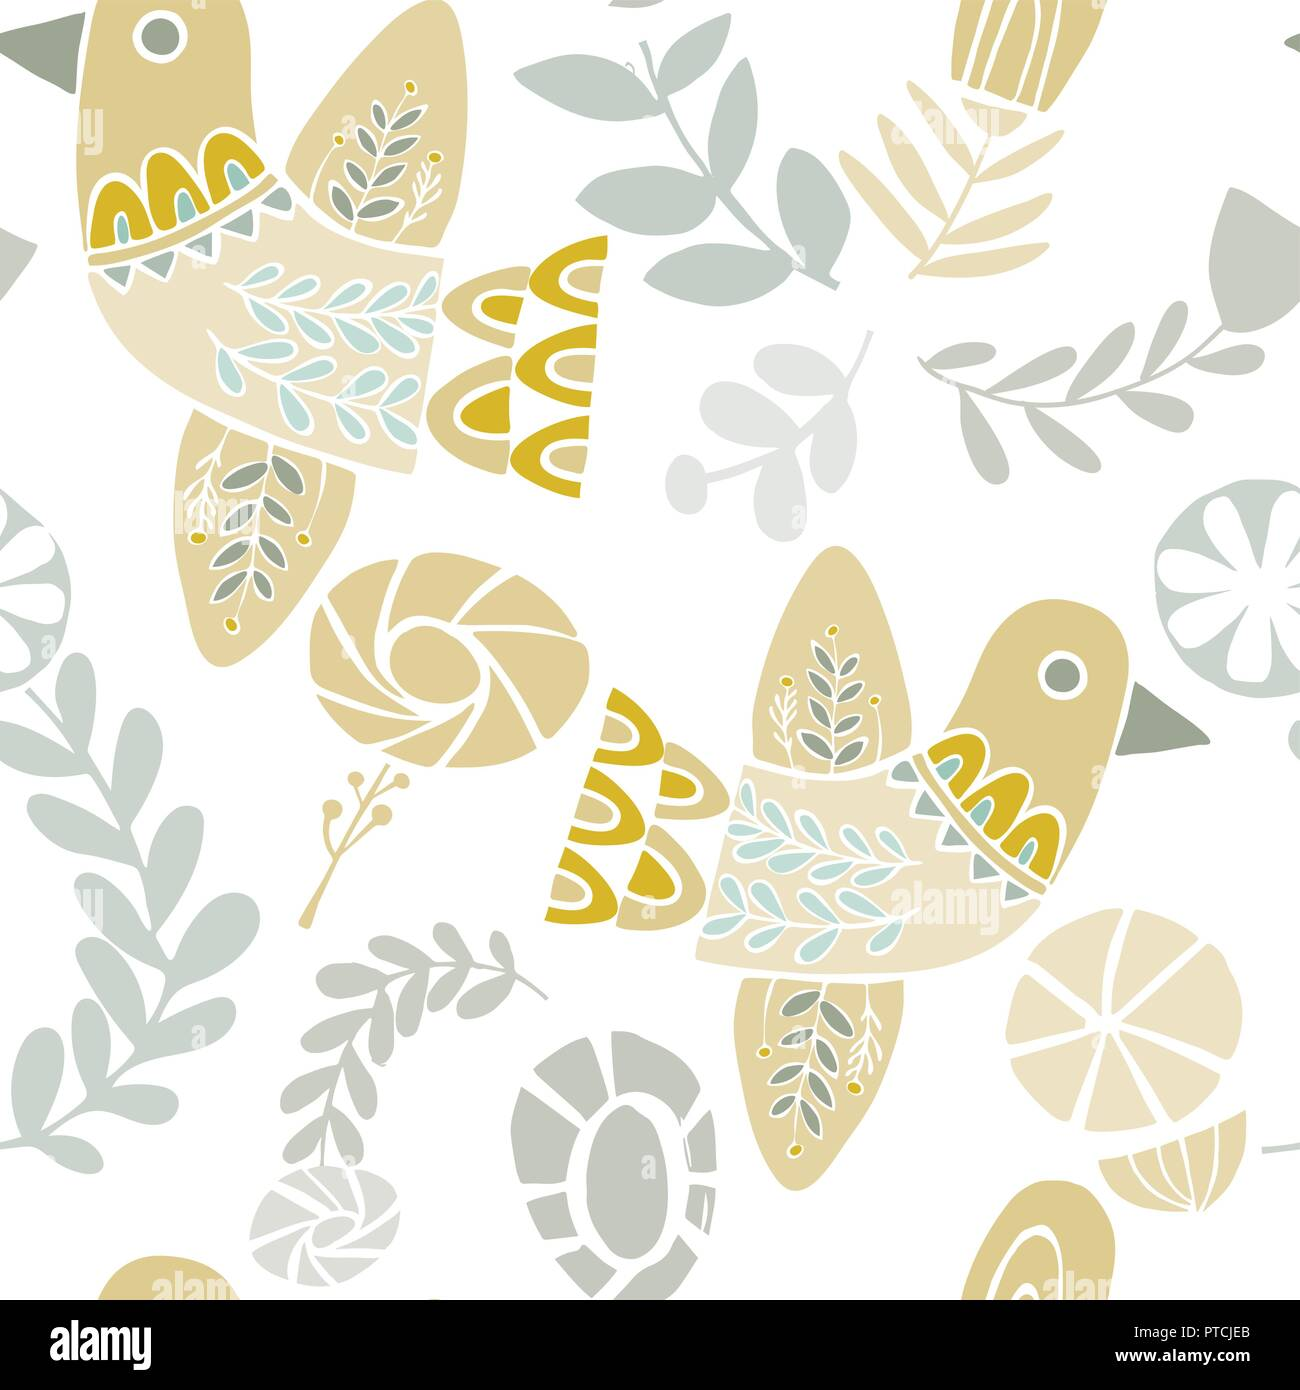 Vector Pastel Folkloric Birds And Flowers Seamless Pattern On A White Background Ideal For Crafts Fabrics Wrapping Paper Wallpaper Stock Vector Image Art Alamy